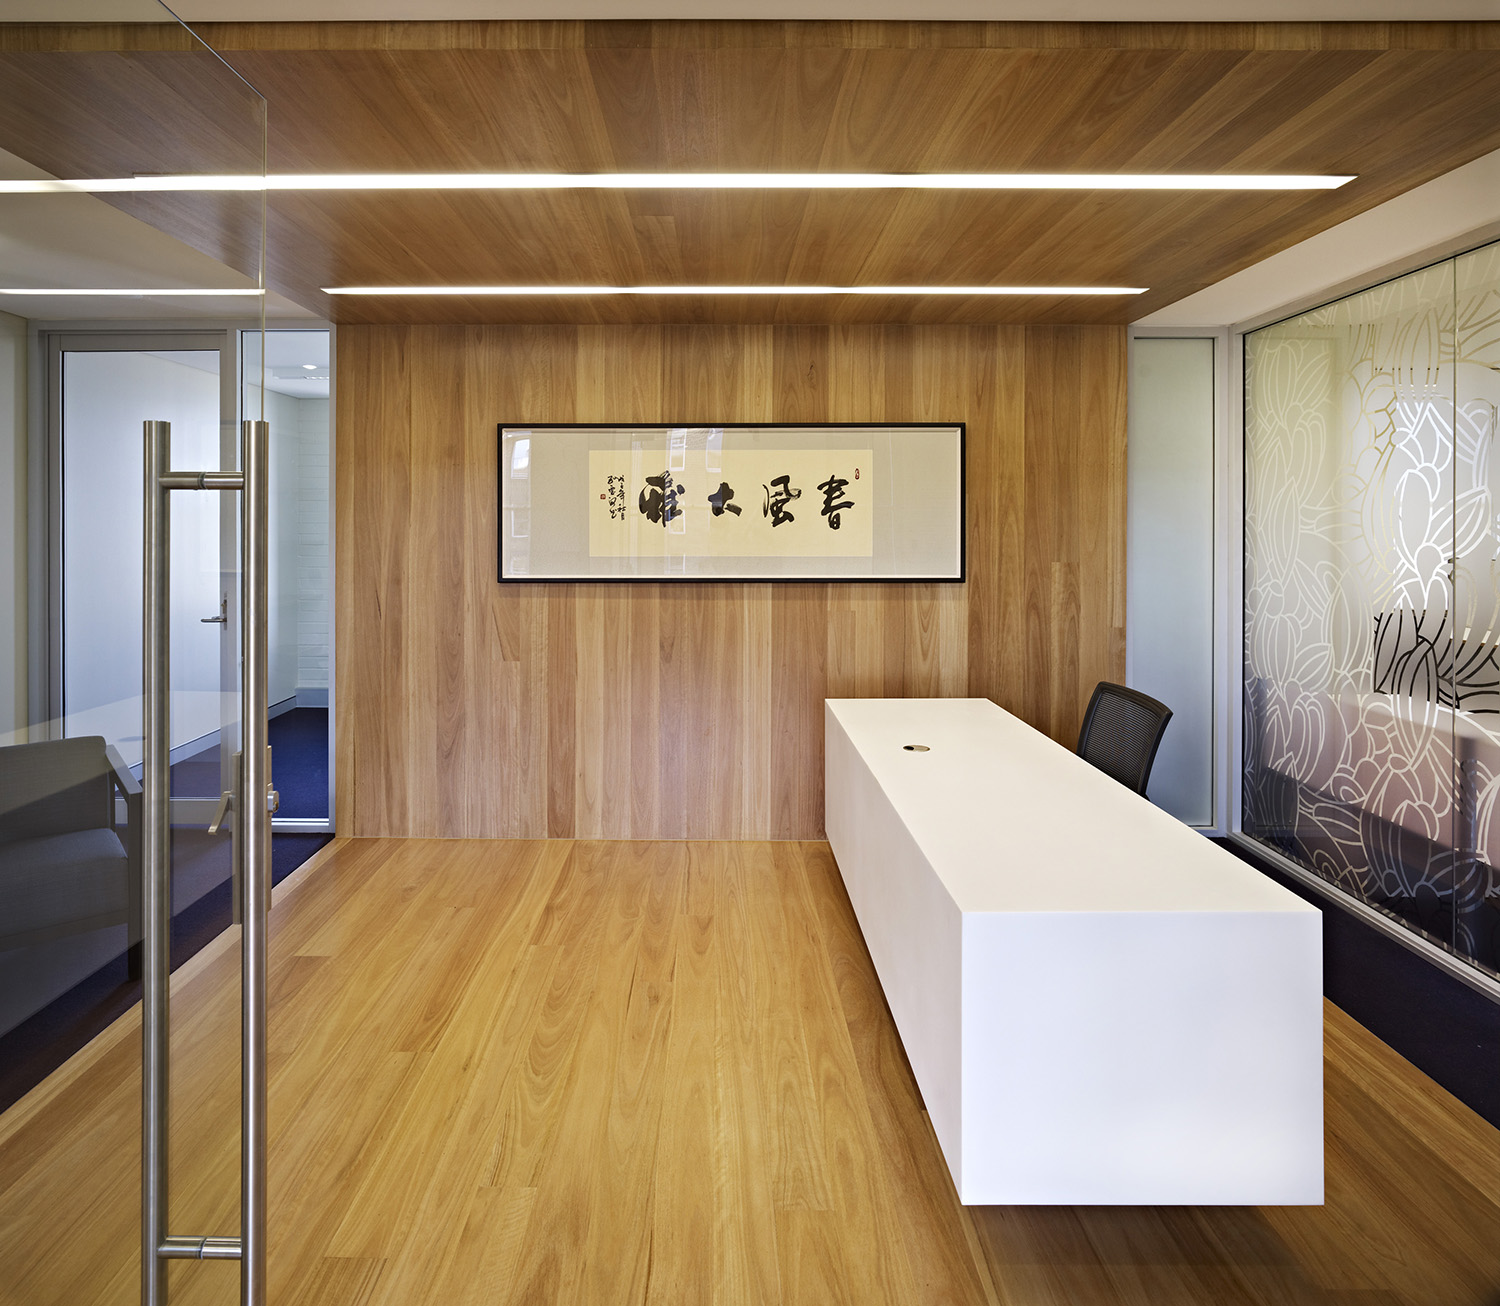 UNSW Confucius Institute Workplace Reception Desk and Entry Foyer Interior Design – Gardner Wetherill GW 1